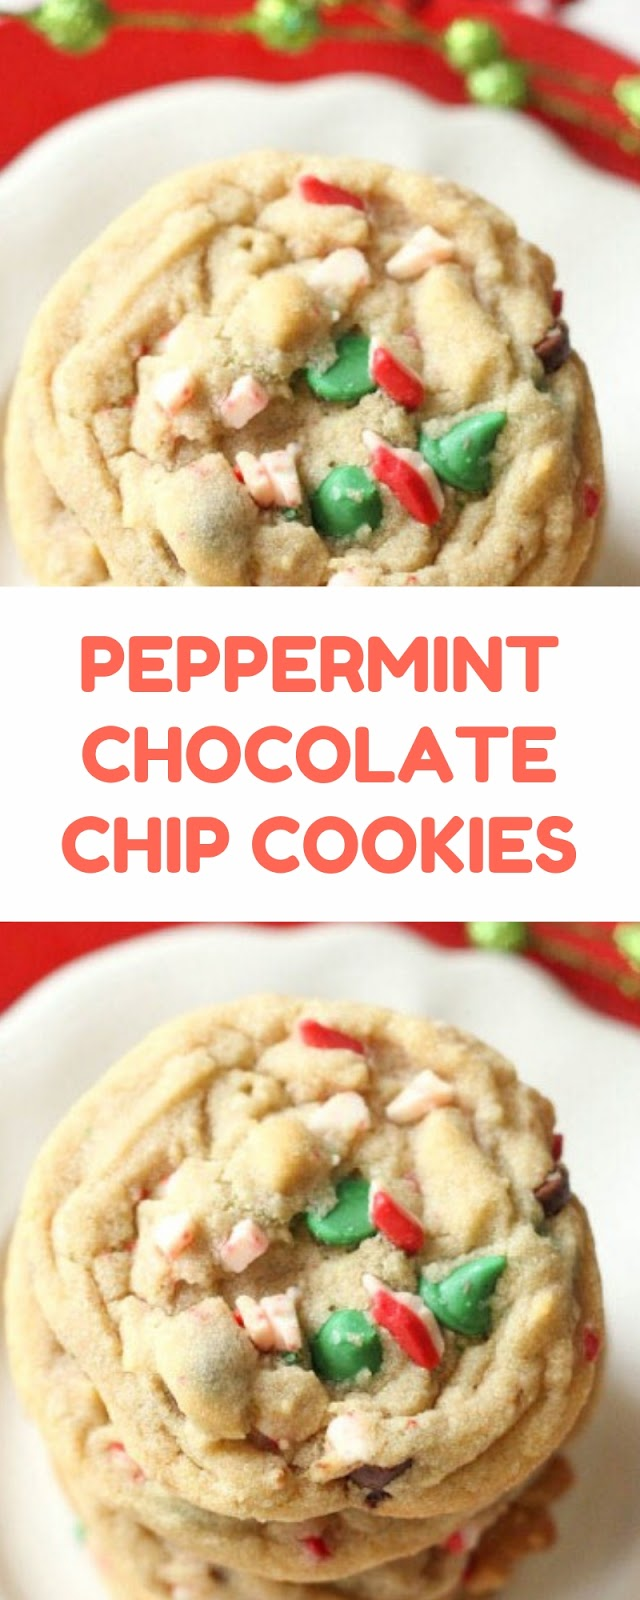 PEPPERMINT CHOCOLATE CHIP COOKIES #christmas #cookies